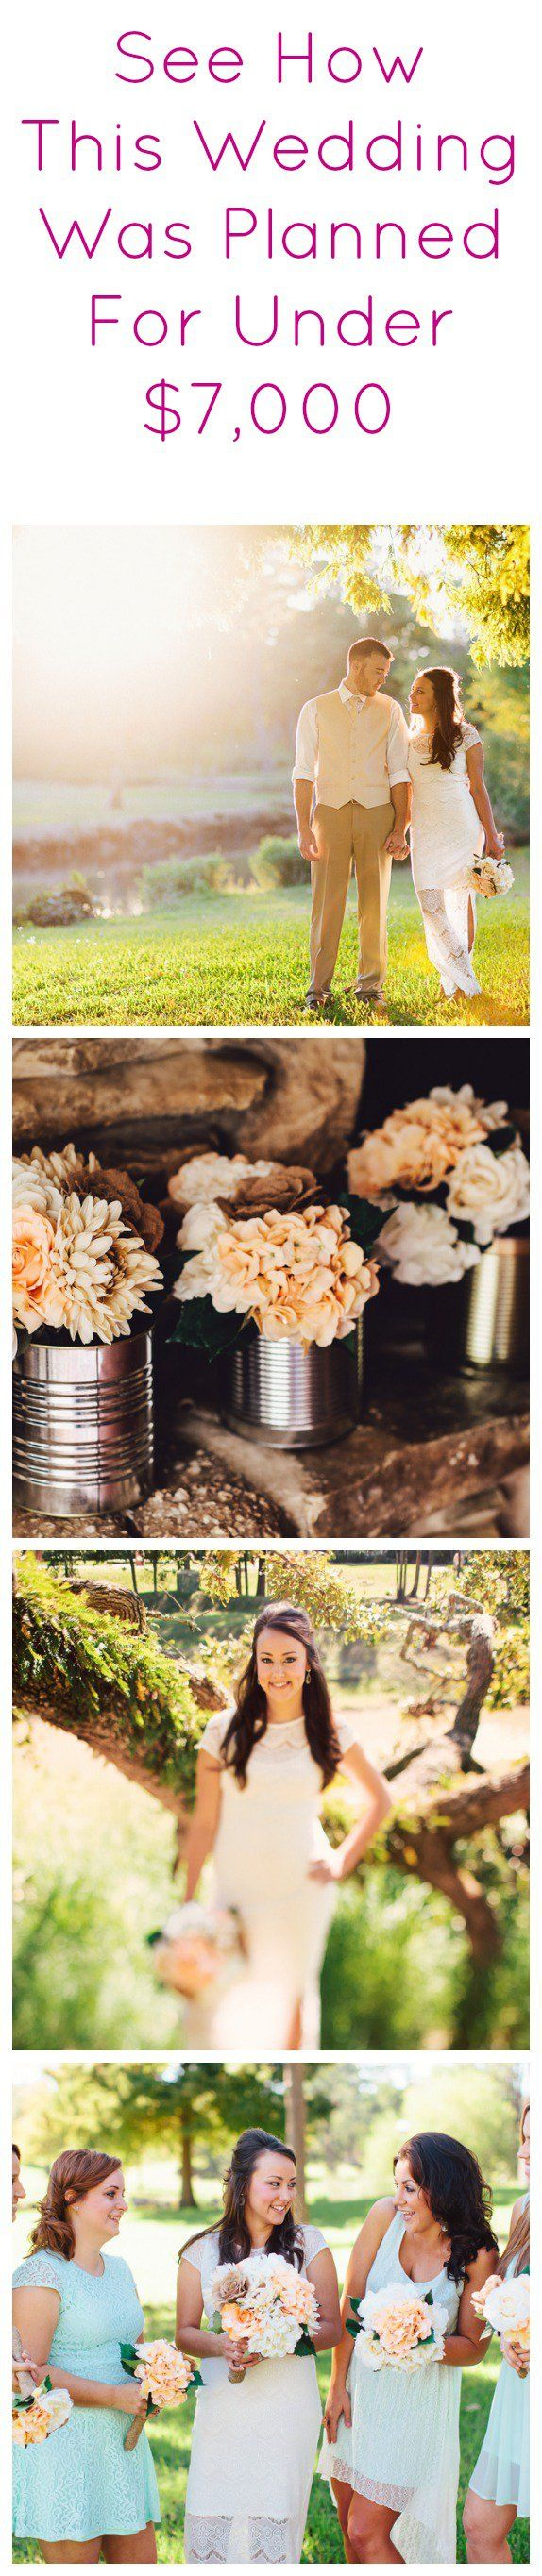 208 best backyard wedding decor images on pinterest backyard